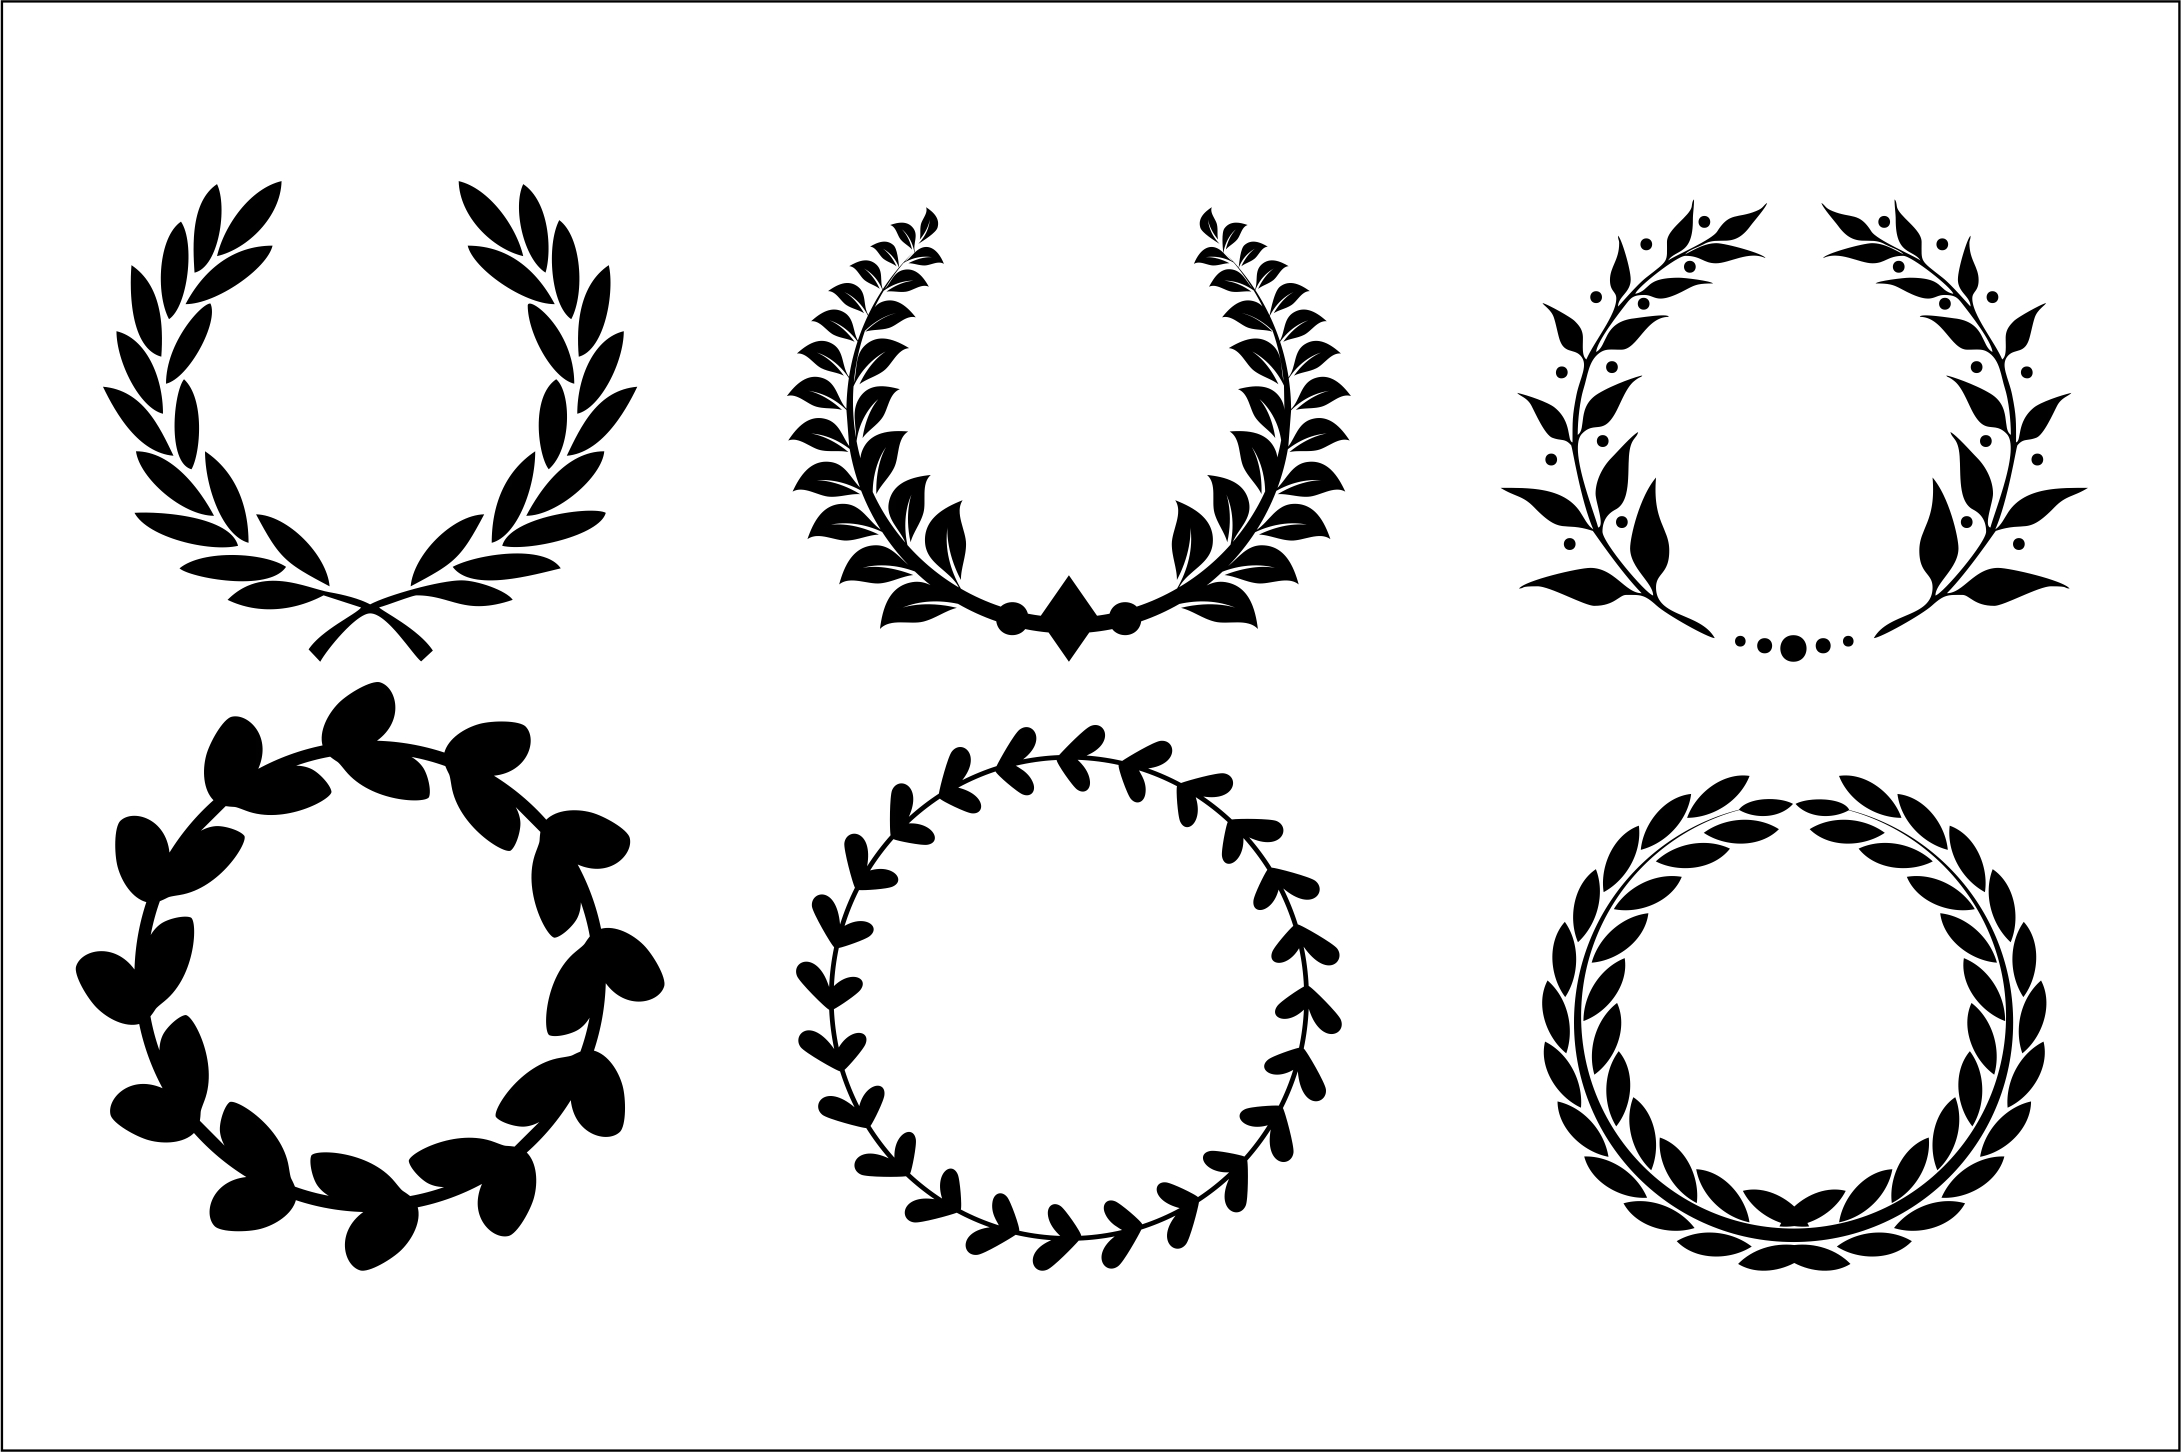 Download Free Wreaths Cut Files Graphic By Bn3300877 Creative Fabrica for Cricut Explore, Silhouette and other cutting machines.